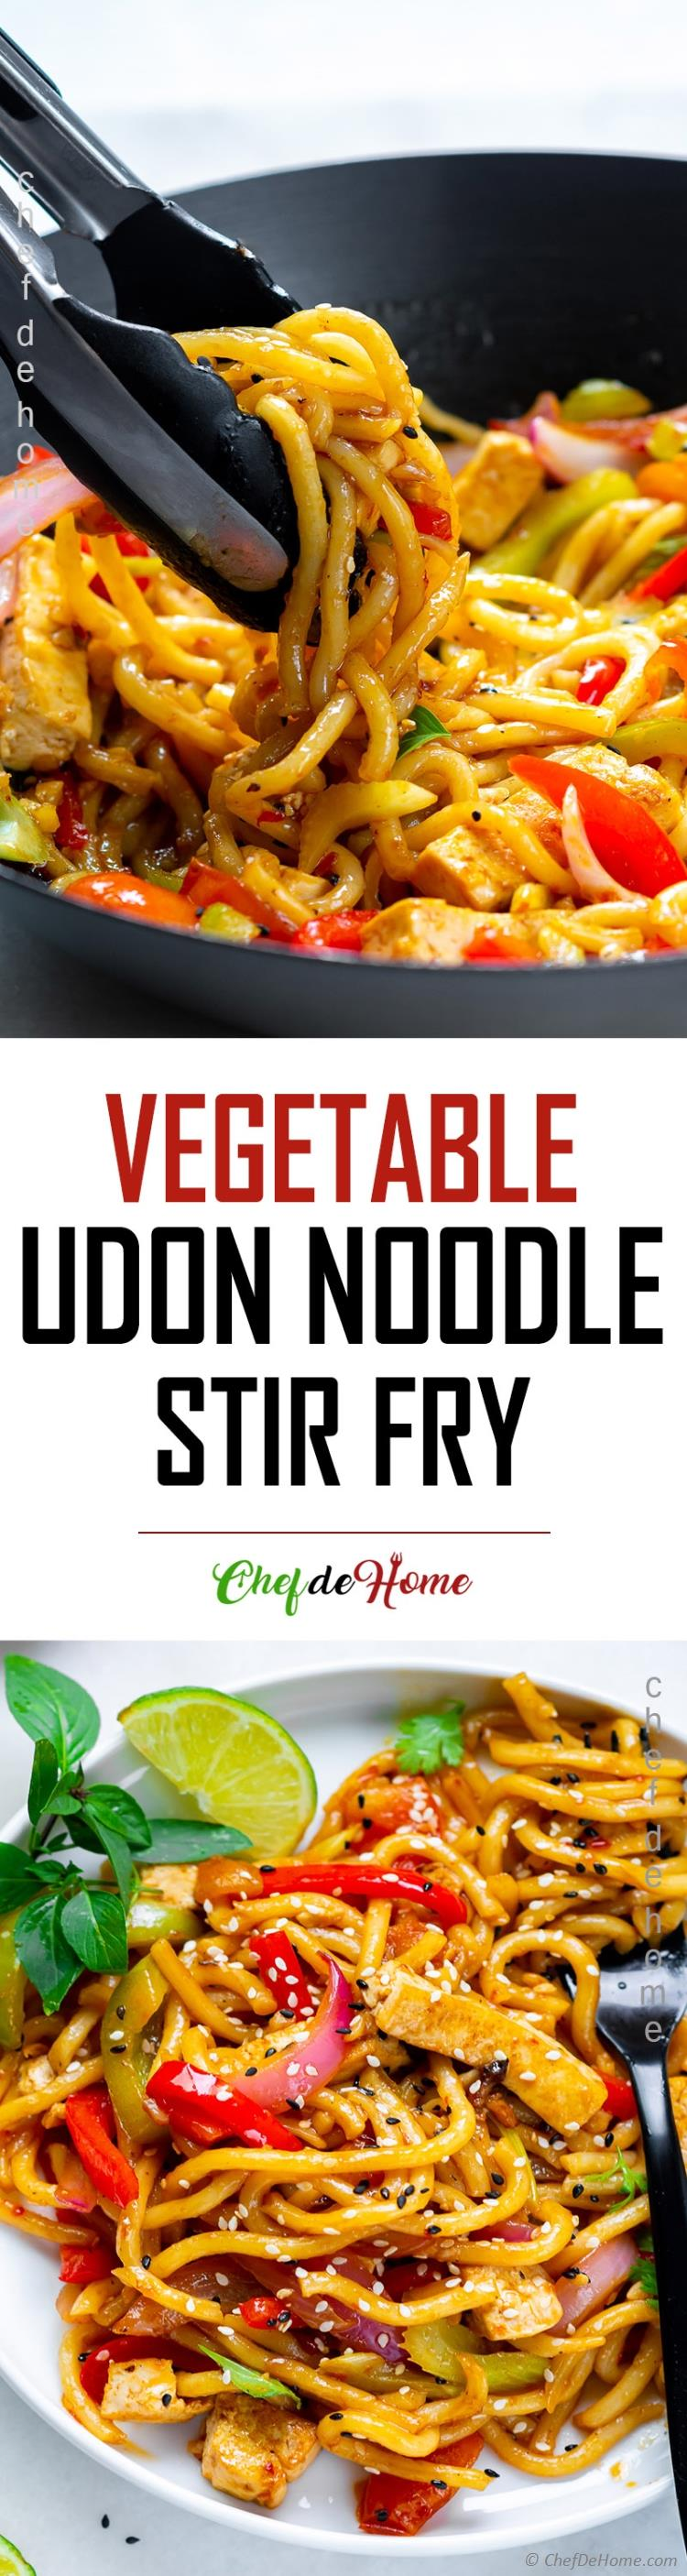 Udon Noodle Stir Fry with Tofu Veggies and Oyster Sauce Stir Fry Sauce